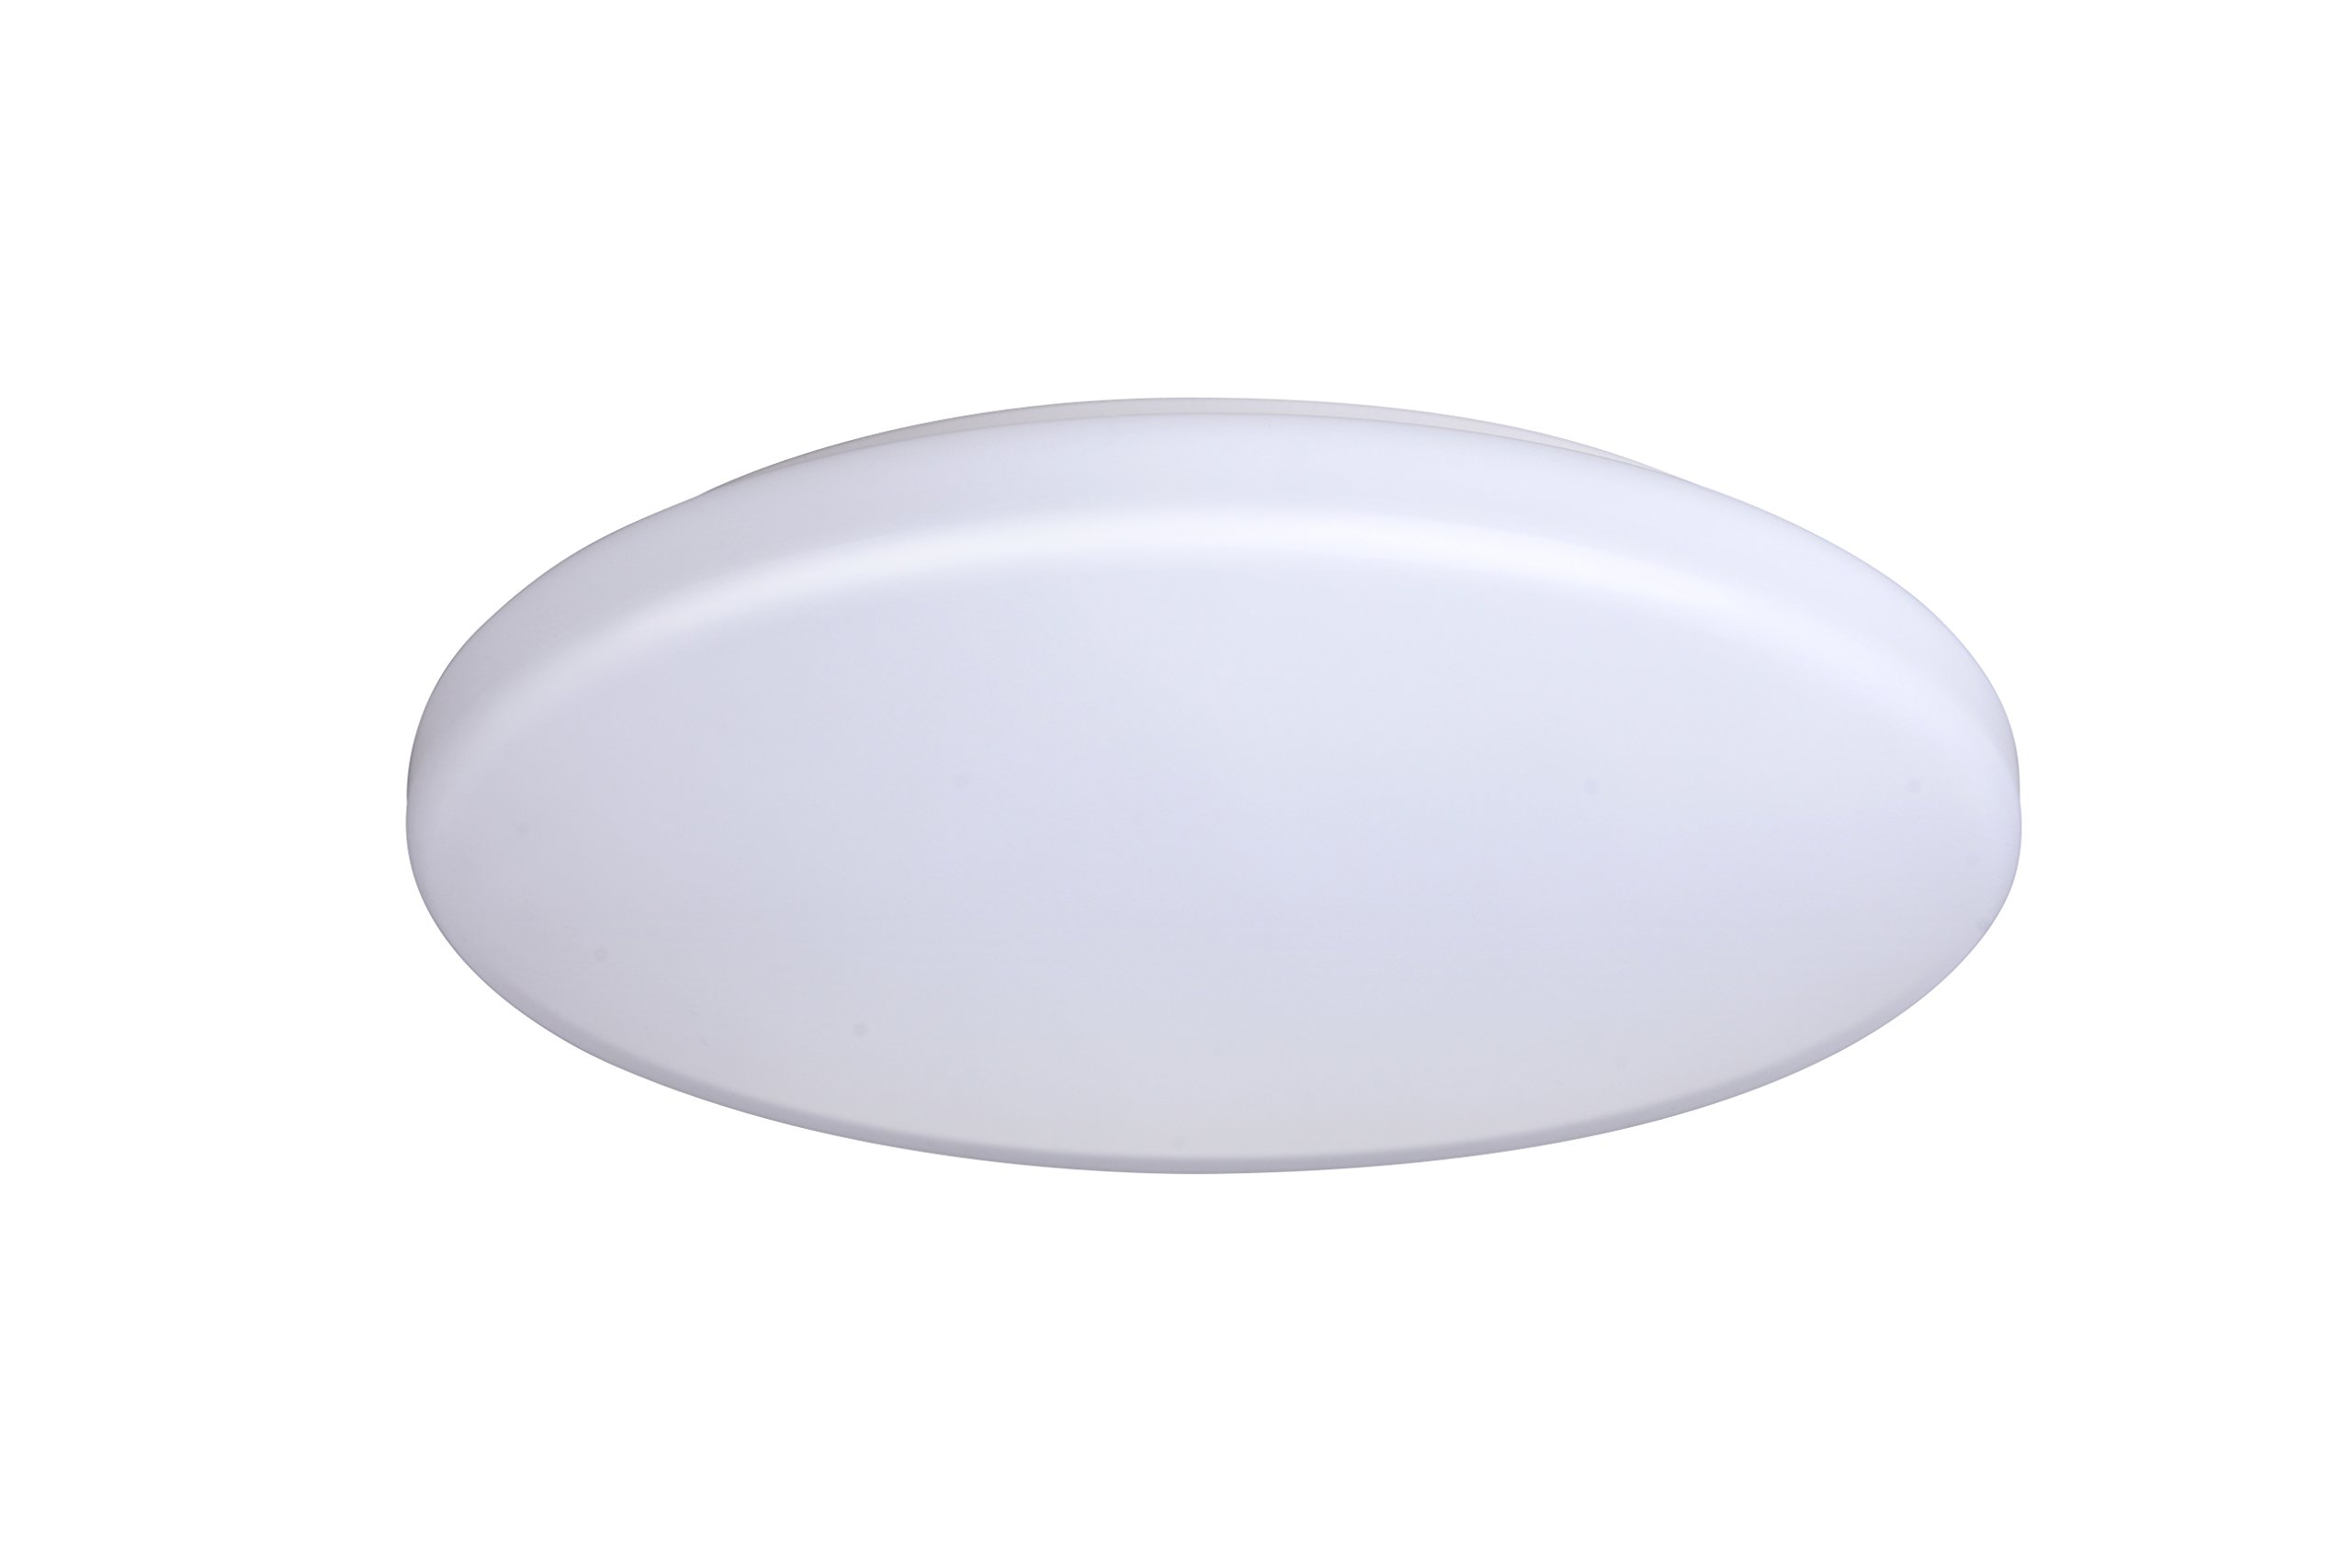 Lit-Path 13 inch LED Flush Mount Ceiling Lighting Fixture, 17.5W (125W Equivalent), Dimmable, 1380 Lumen, ETL and ES Qualified